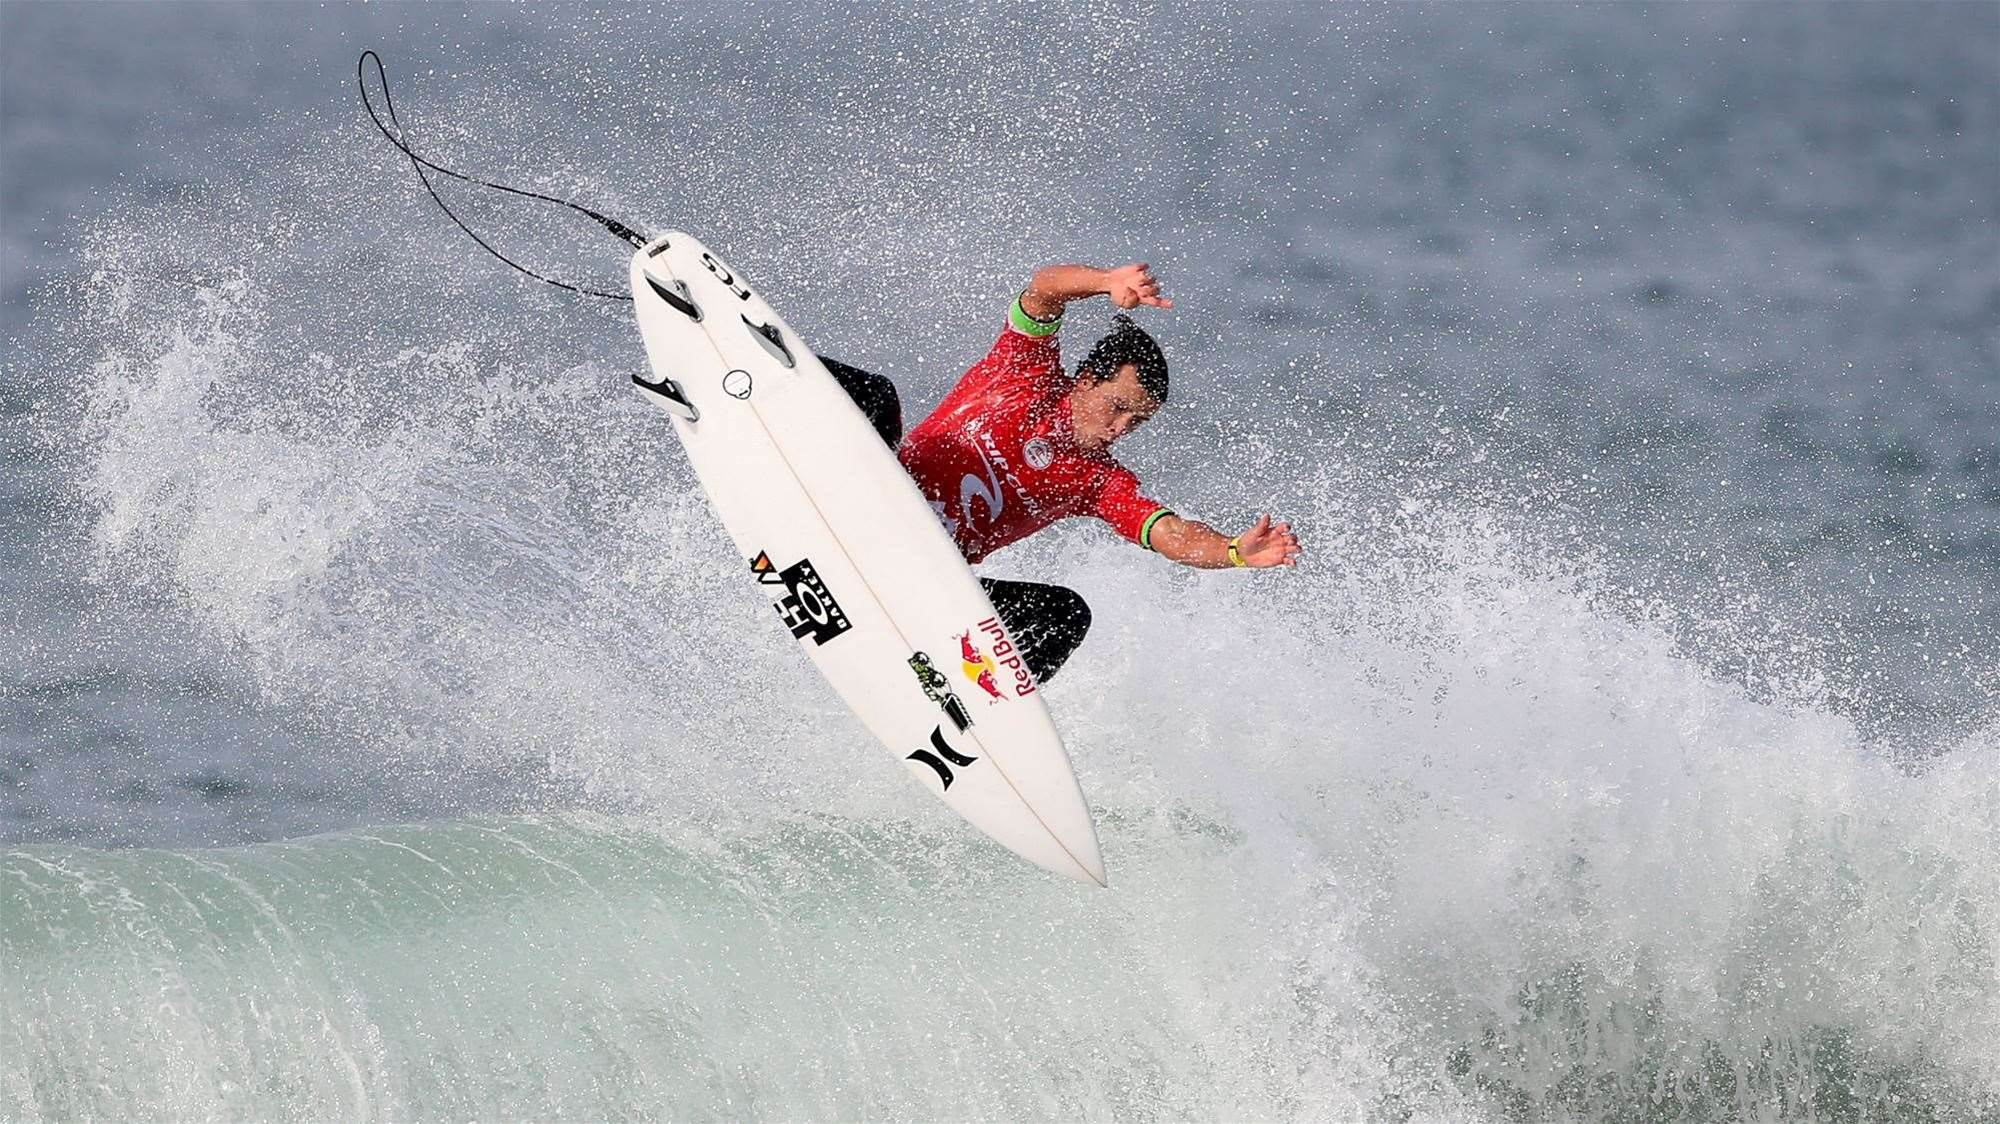 Surfing to make Olympics debut